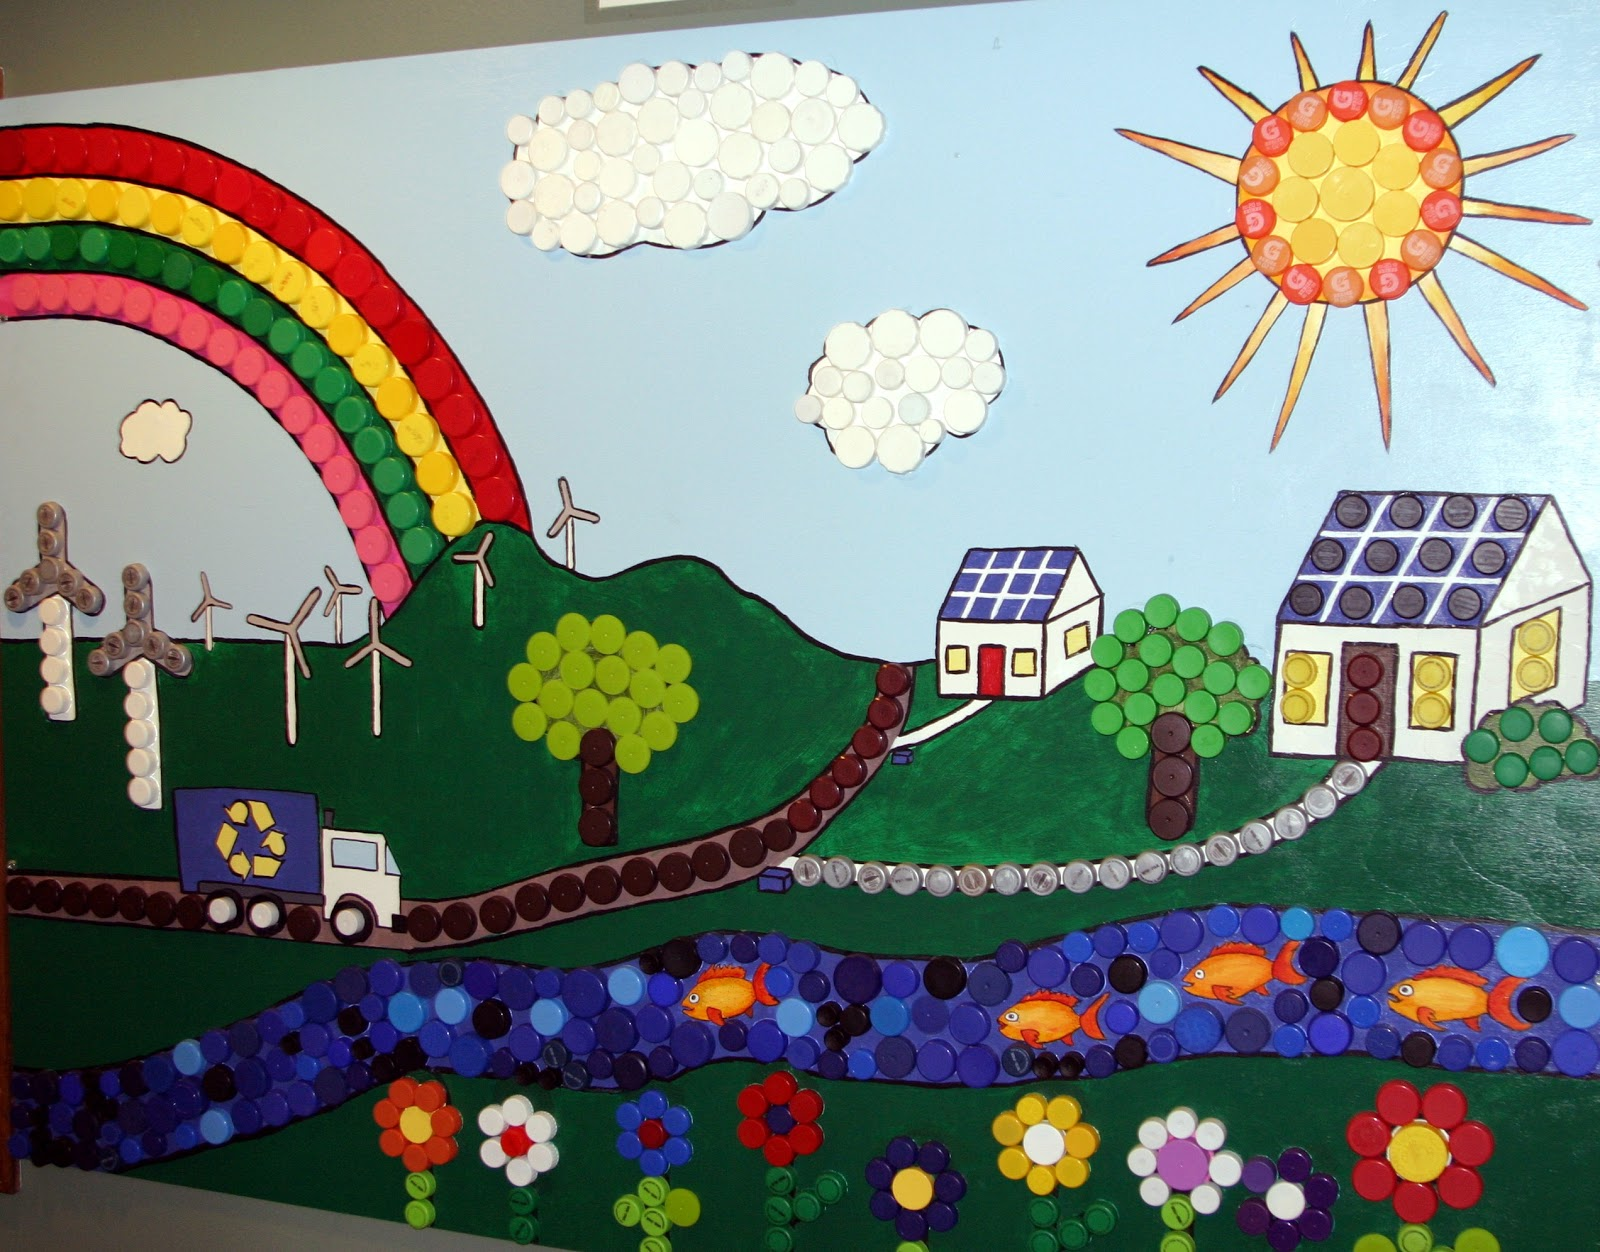 City Of Rolla Missouri Bottle Cap Mural Displayed At